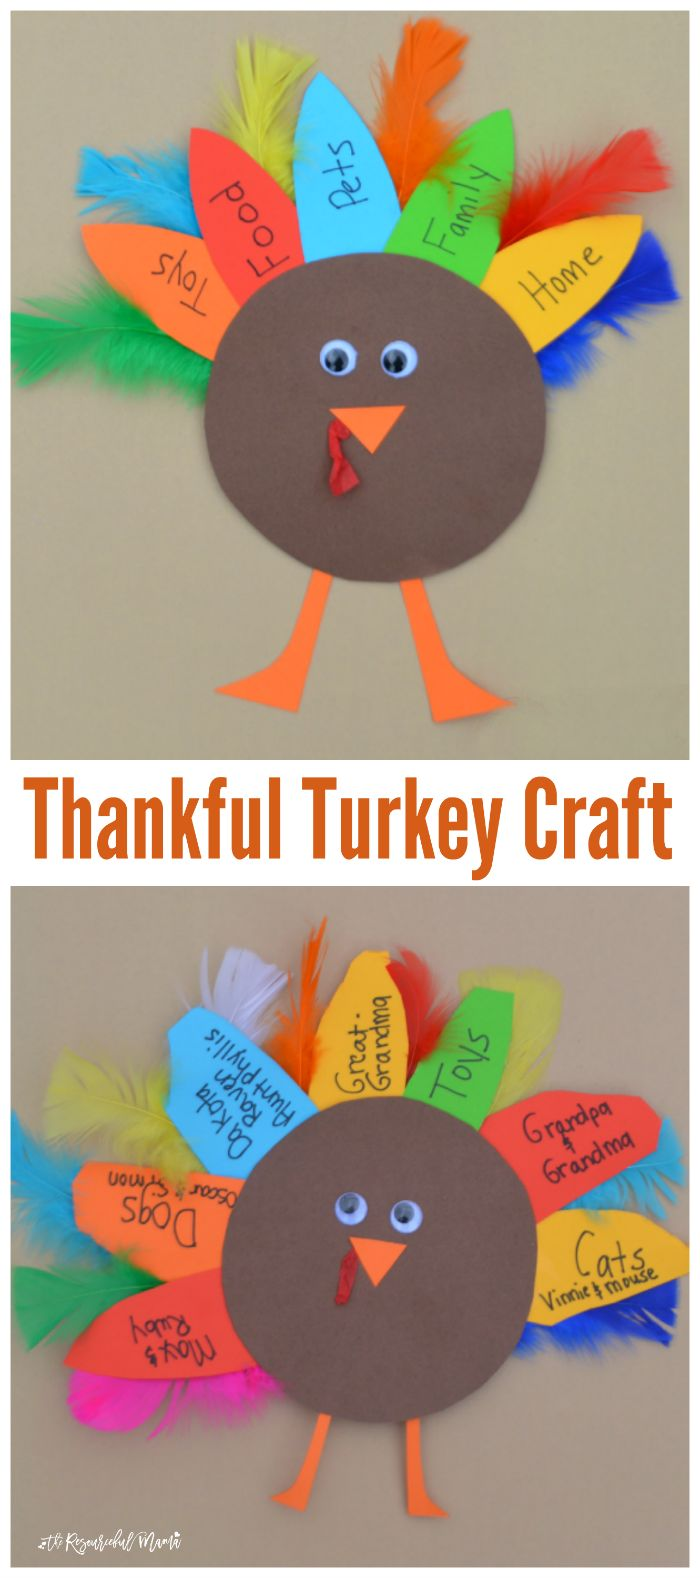 """This turkey kid craft is a great way for kids to celebrate Thanksgiving and express those things for which they are thankful."" 2016"